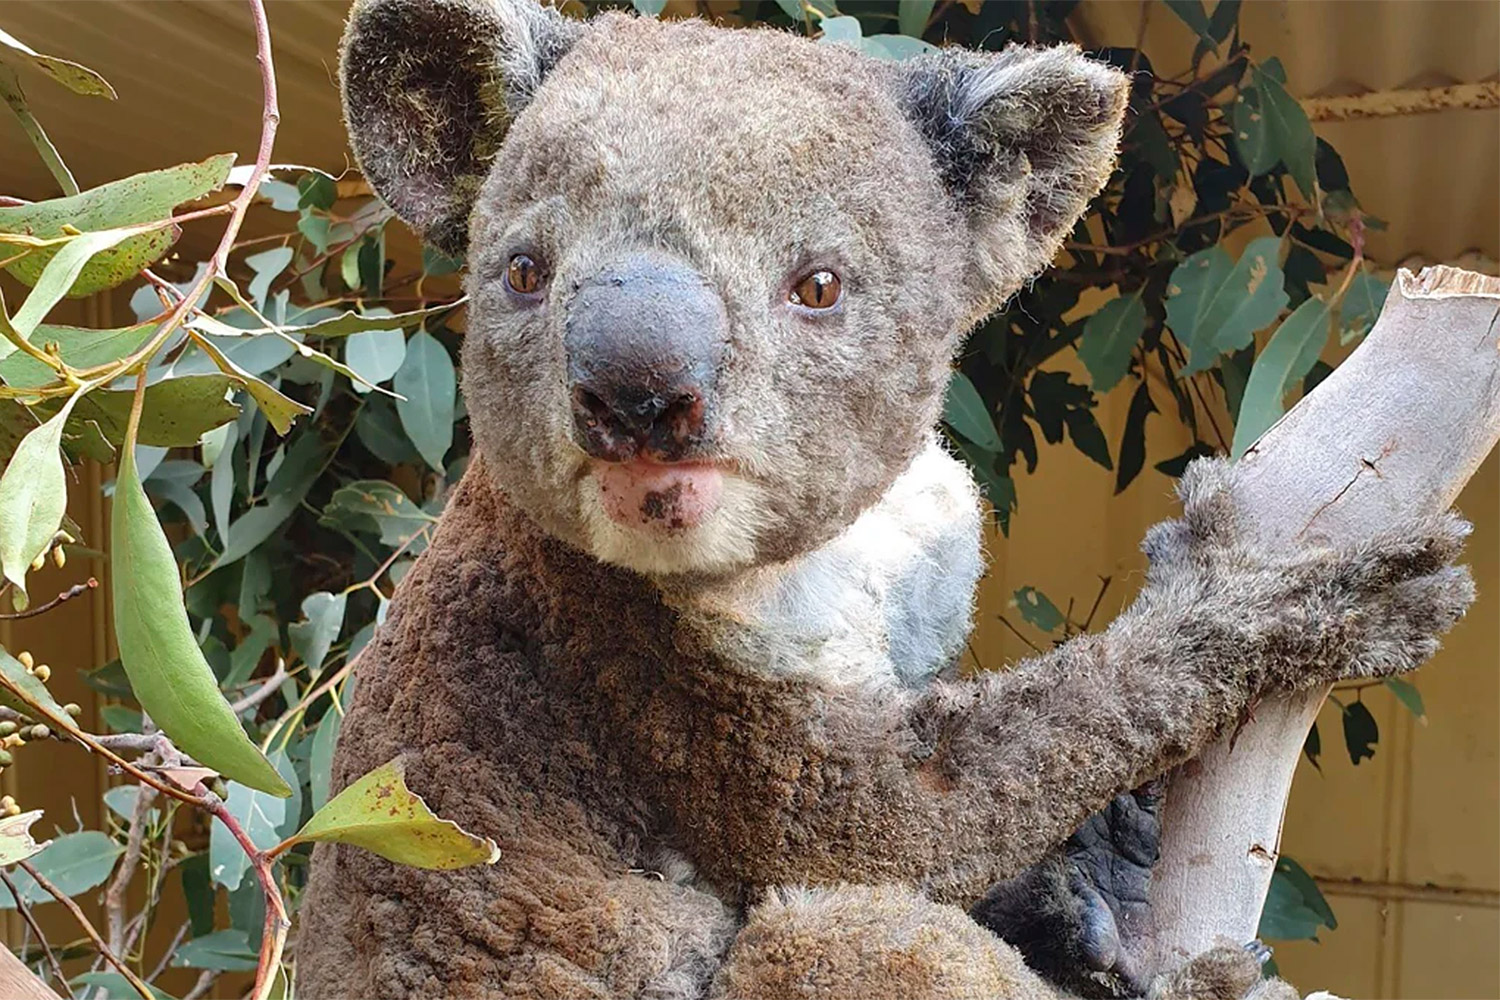 6-Year-Old Boy's Clay Koalas Have Raised Over $51K for Australian Fire Relief